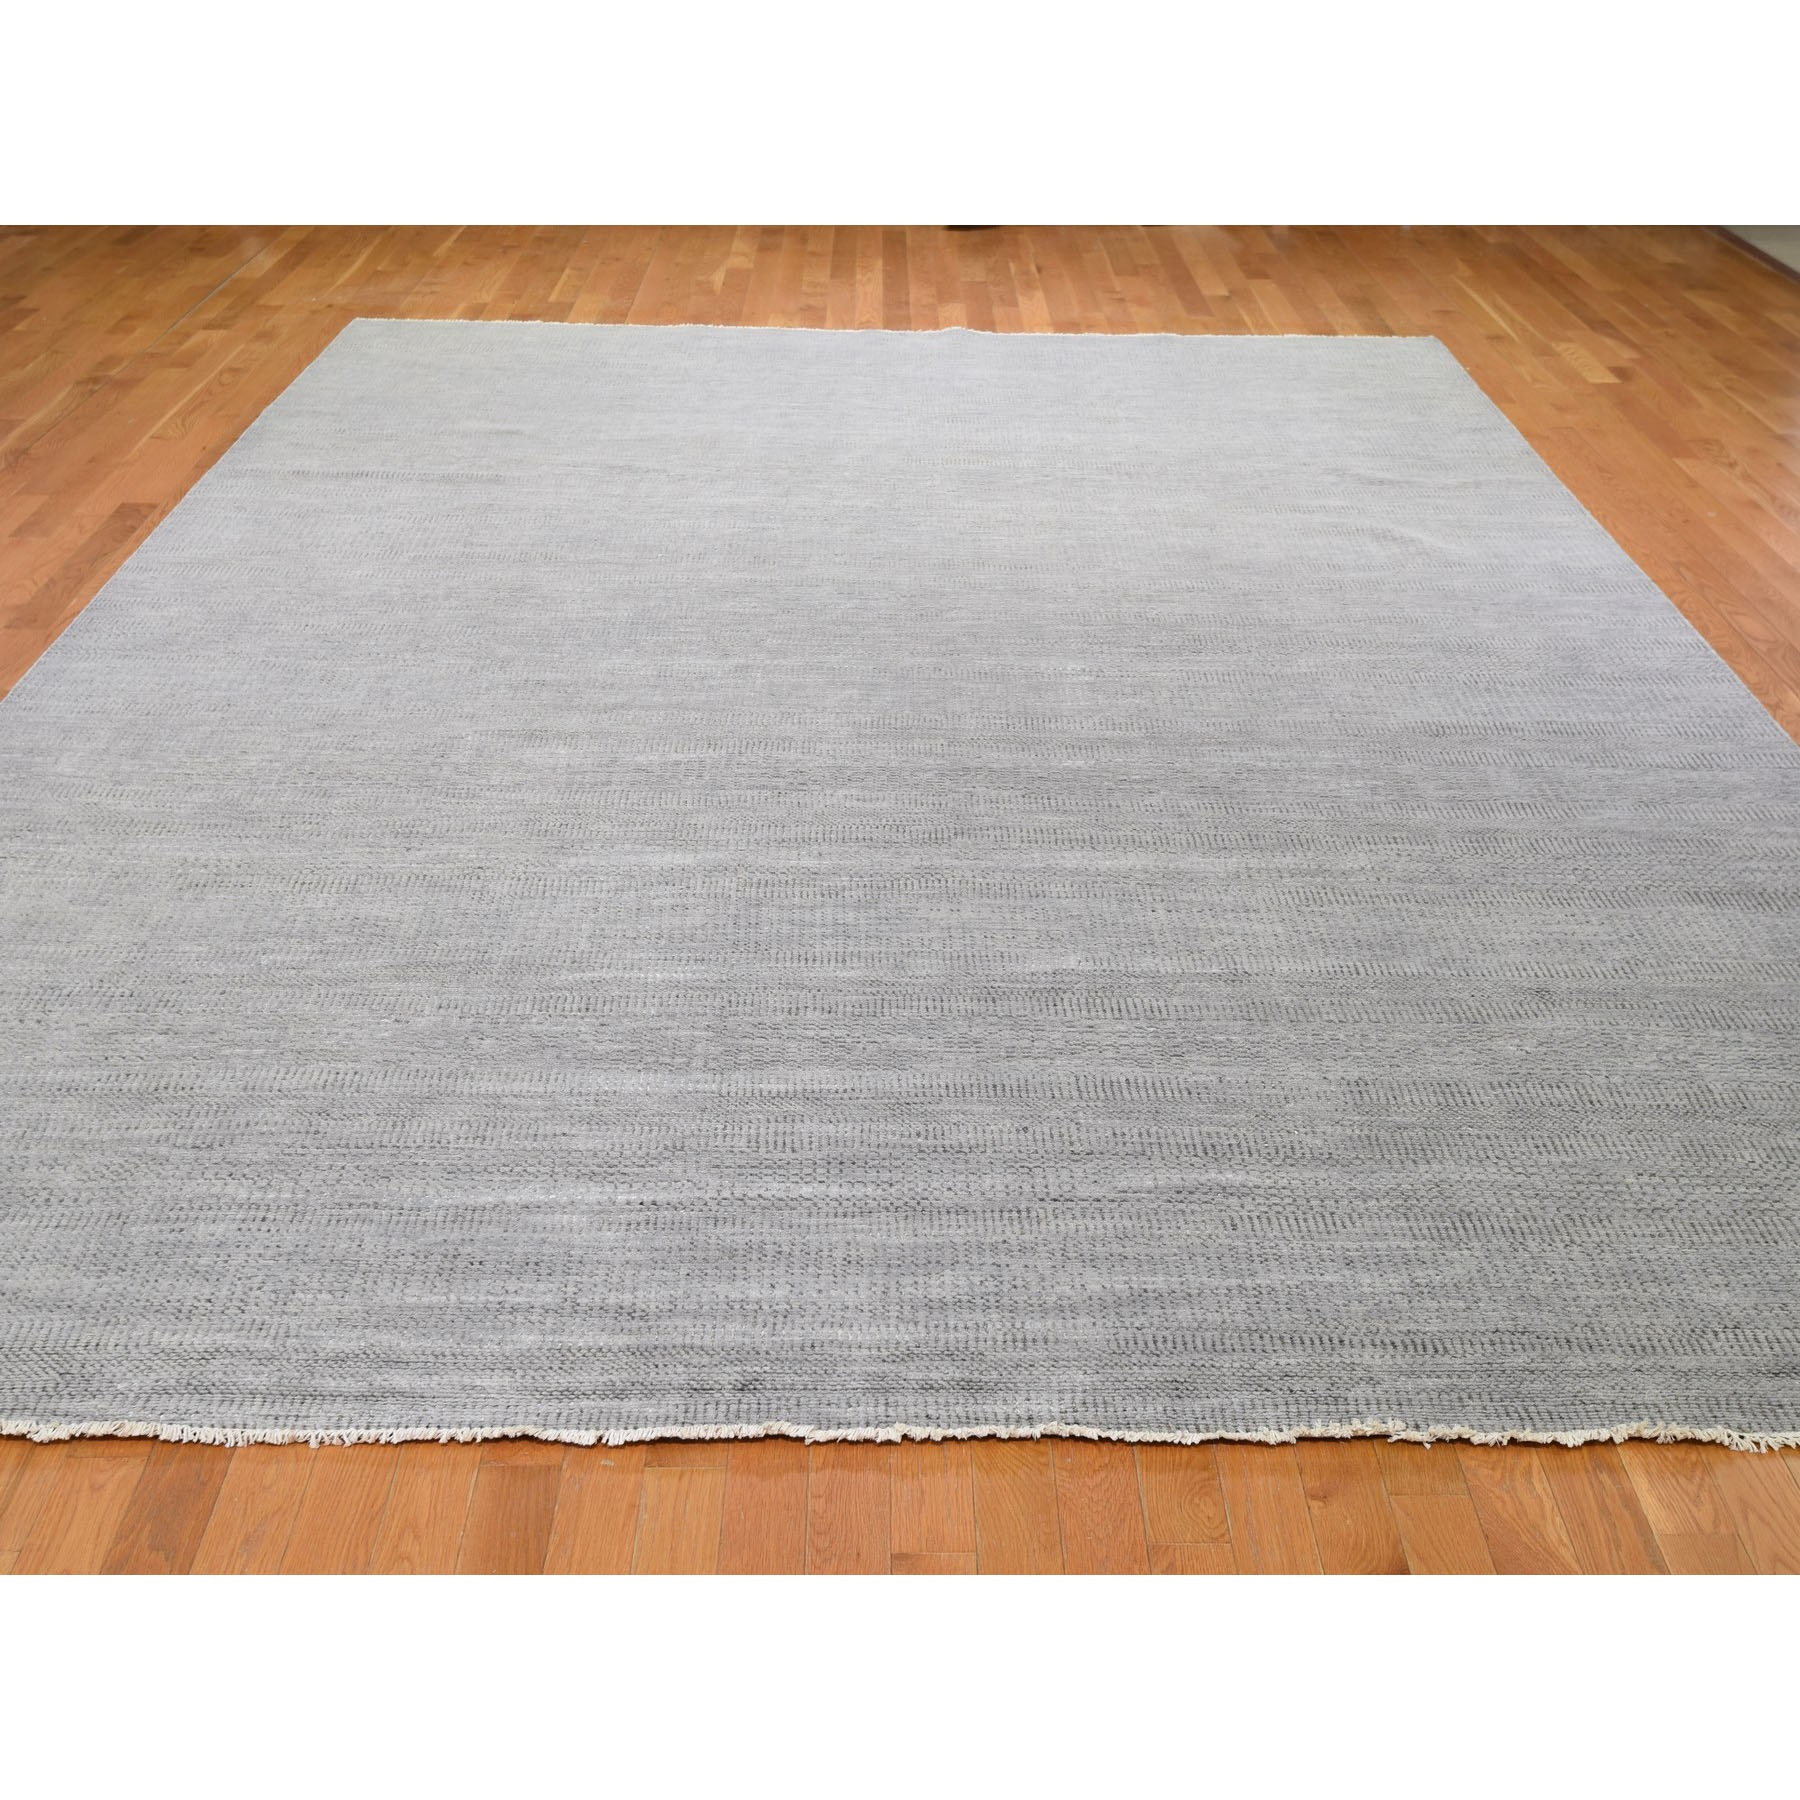 10-3 x14-5  Gray Grass Design Thick And Plush Wool And Silk Hand Knotted Oriental Rug